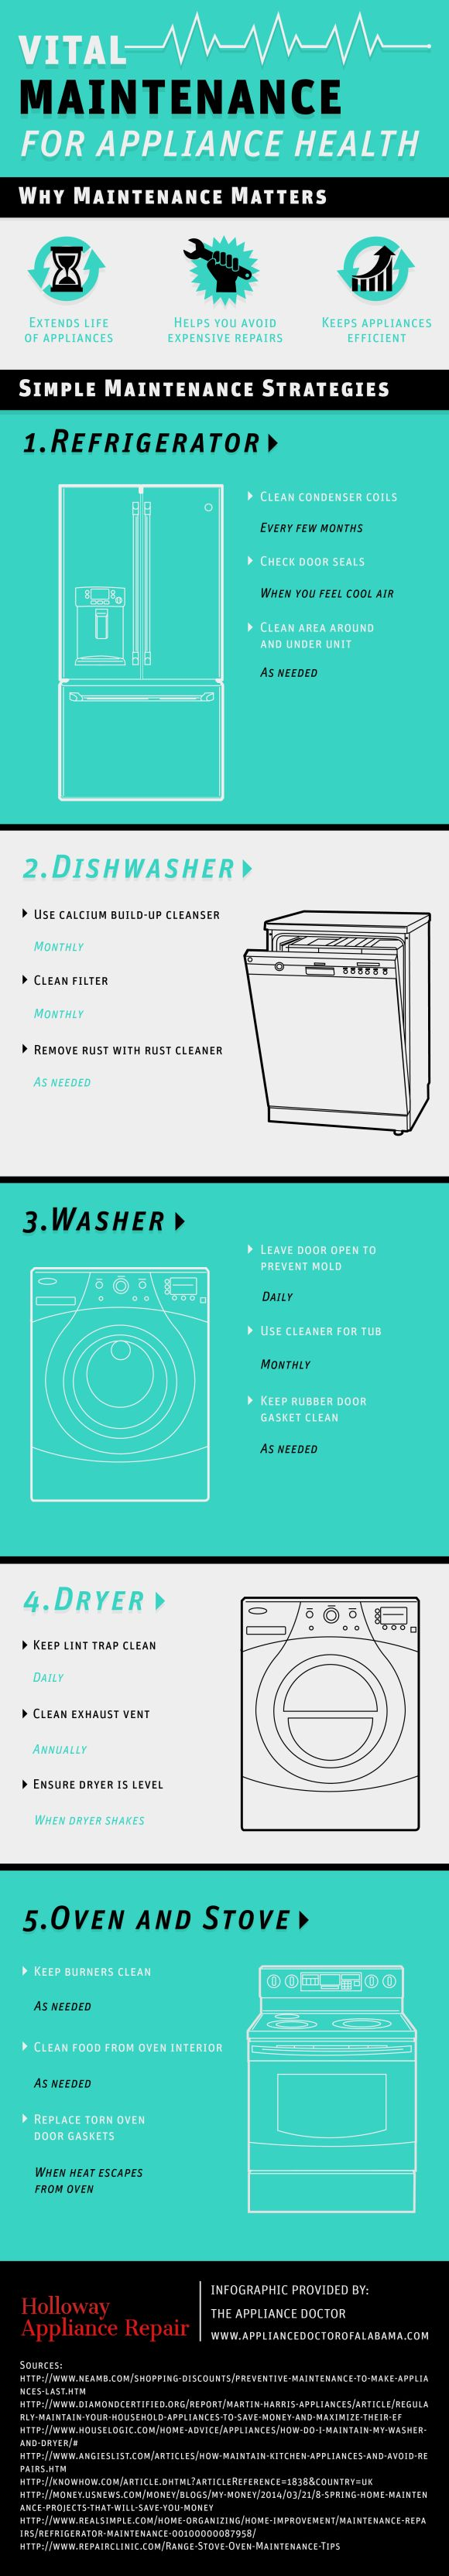 When was the last time you cleaned the condenser coils on your refrigerator? Cleaning them every few months can help the appliance run smoothly! Take a look at this Birmingham refrigerator repair infographic to find more appliance advice.